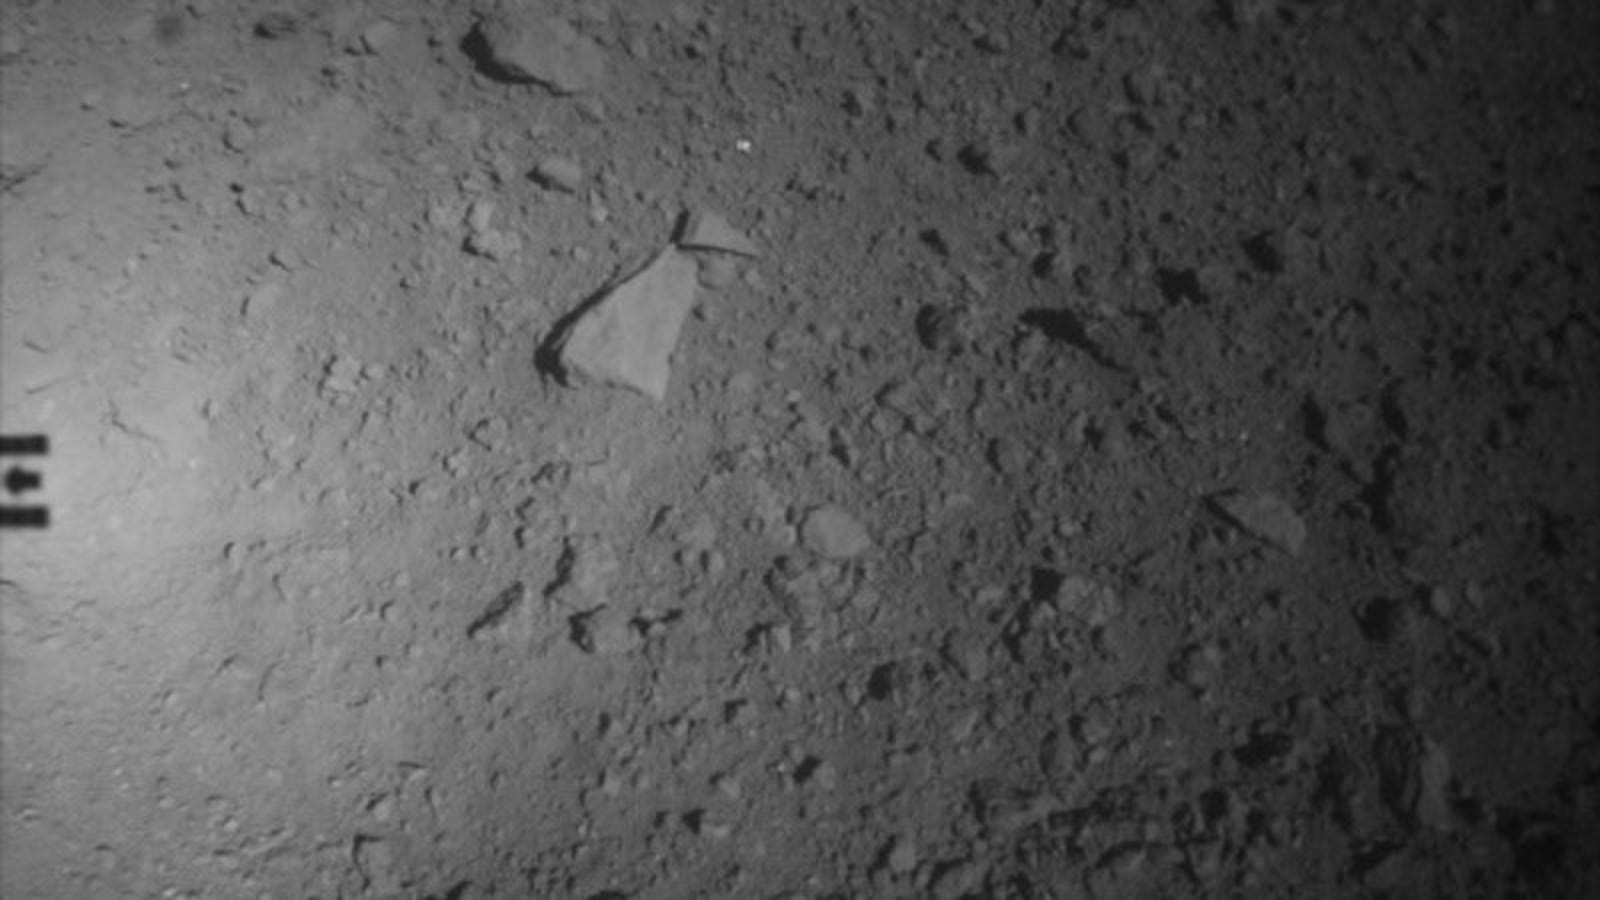 Japan's Asteroid Probe Packs Up and Prepares for Return to Earth